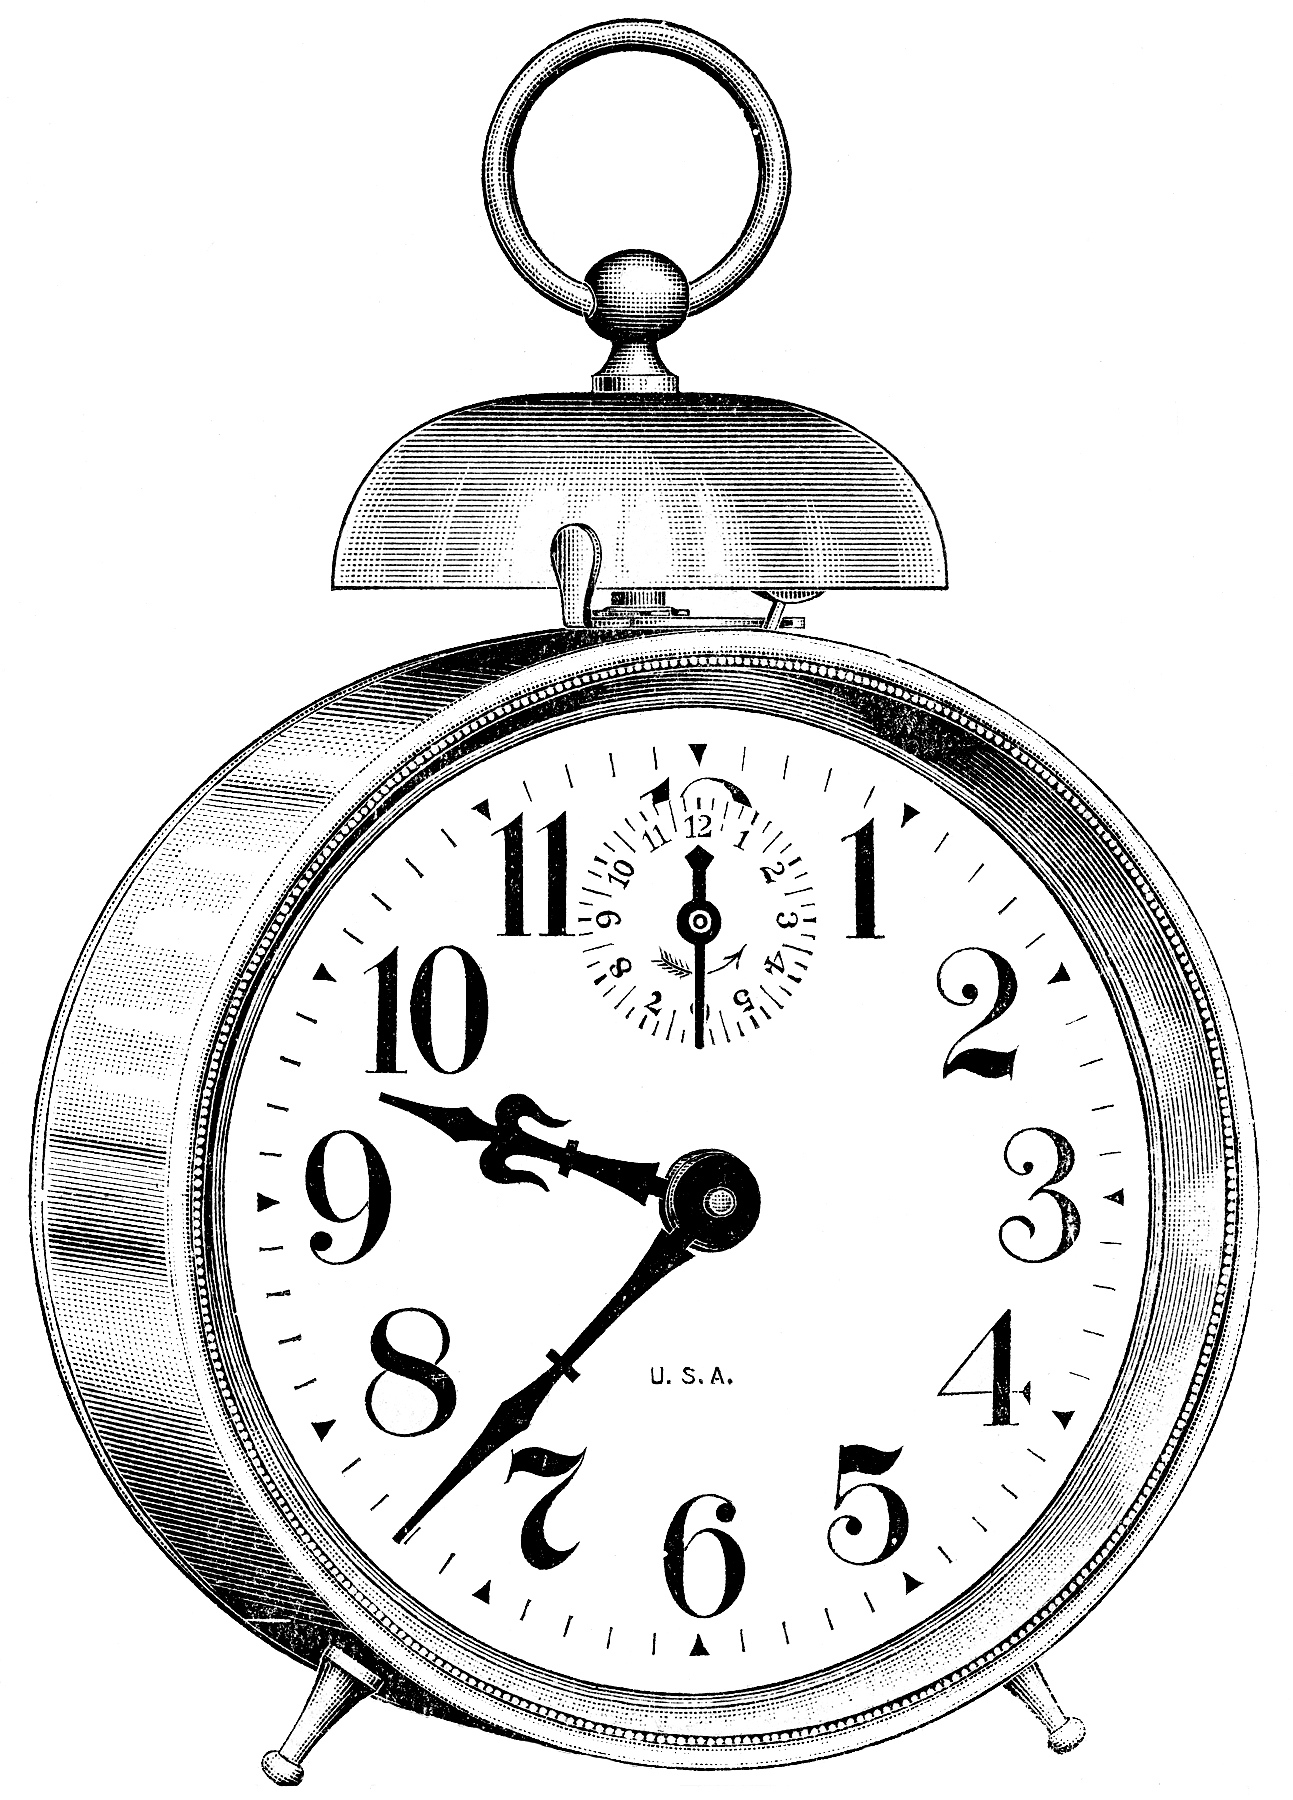 clock graphics vintage. Clocks clipart old fashioned